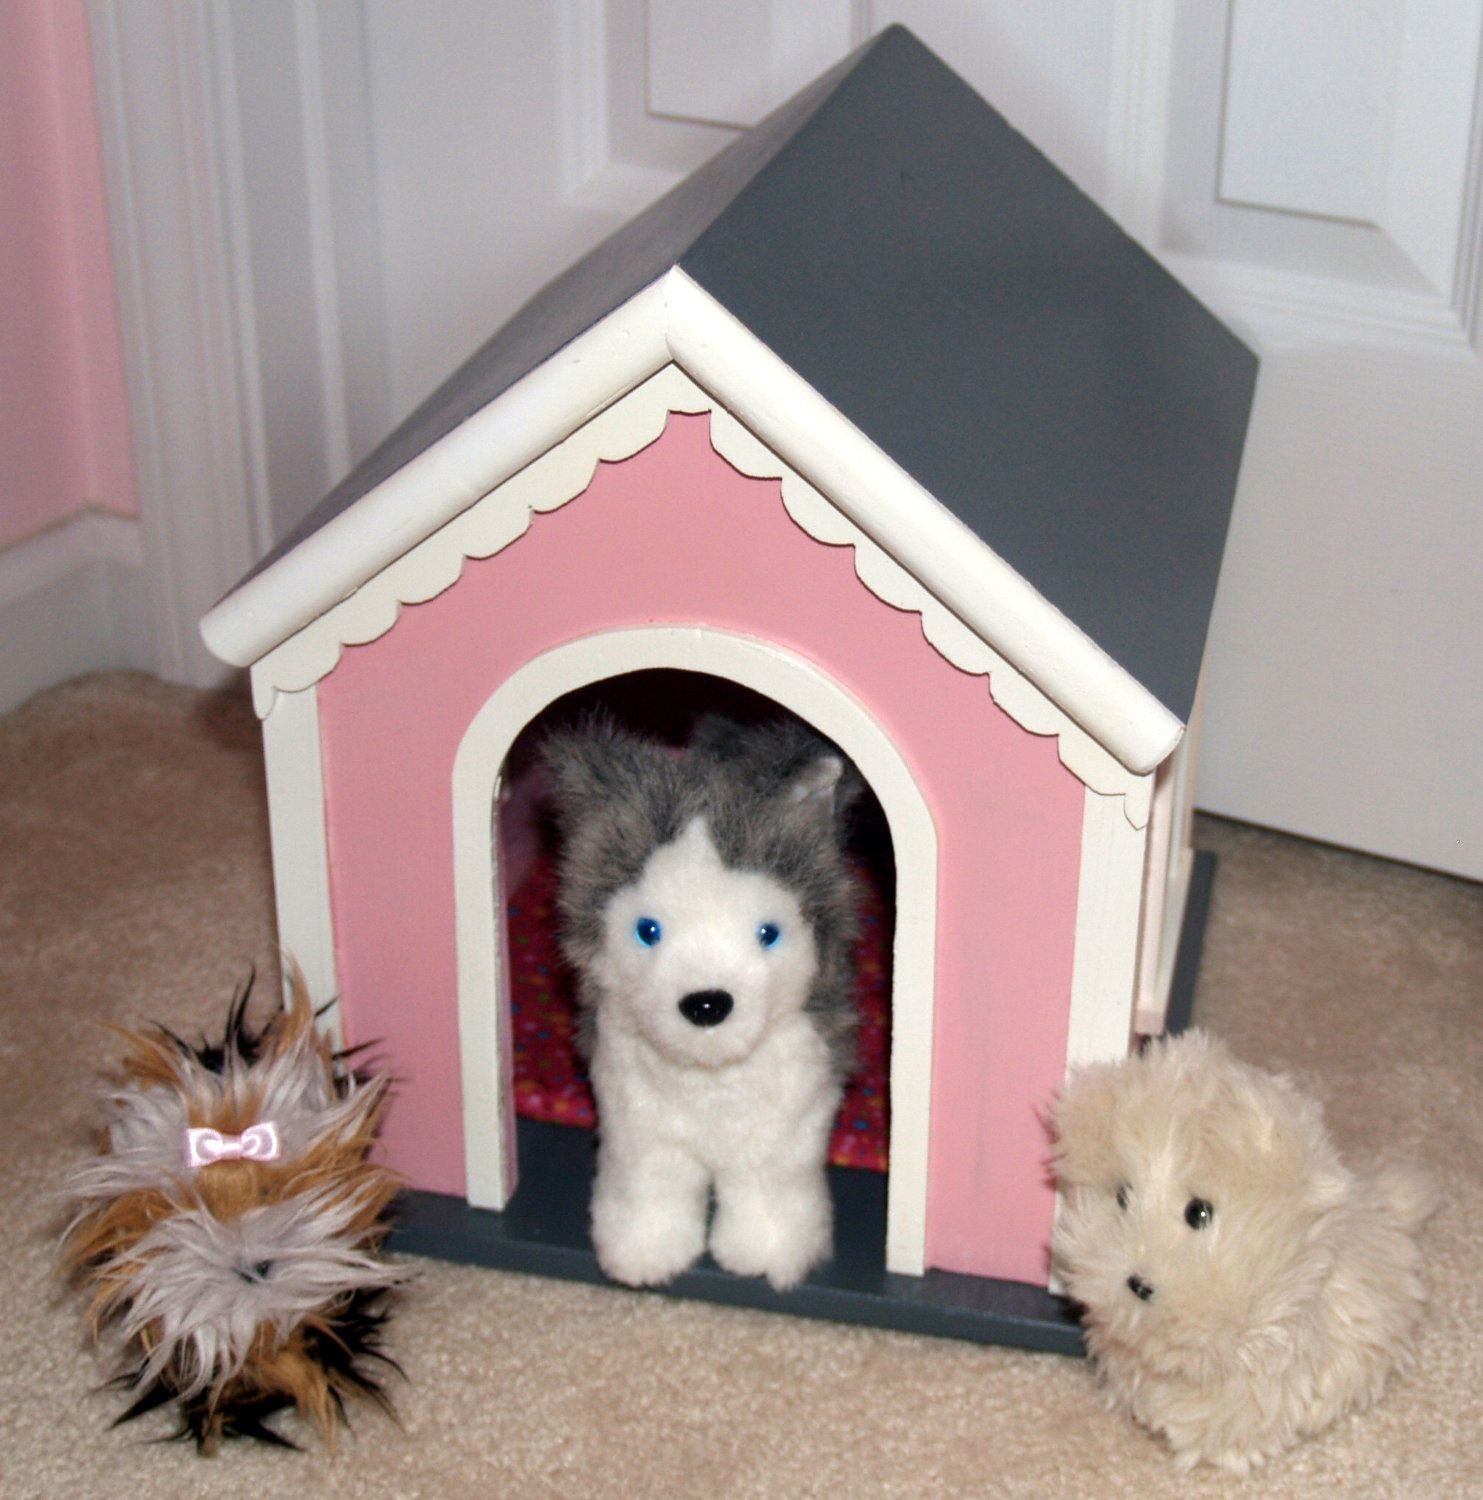 Dog House For American Girl Type Pets Or Stuffed Animals 59 00